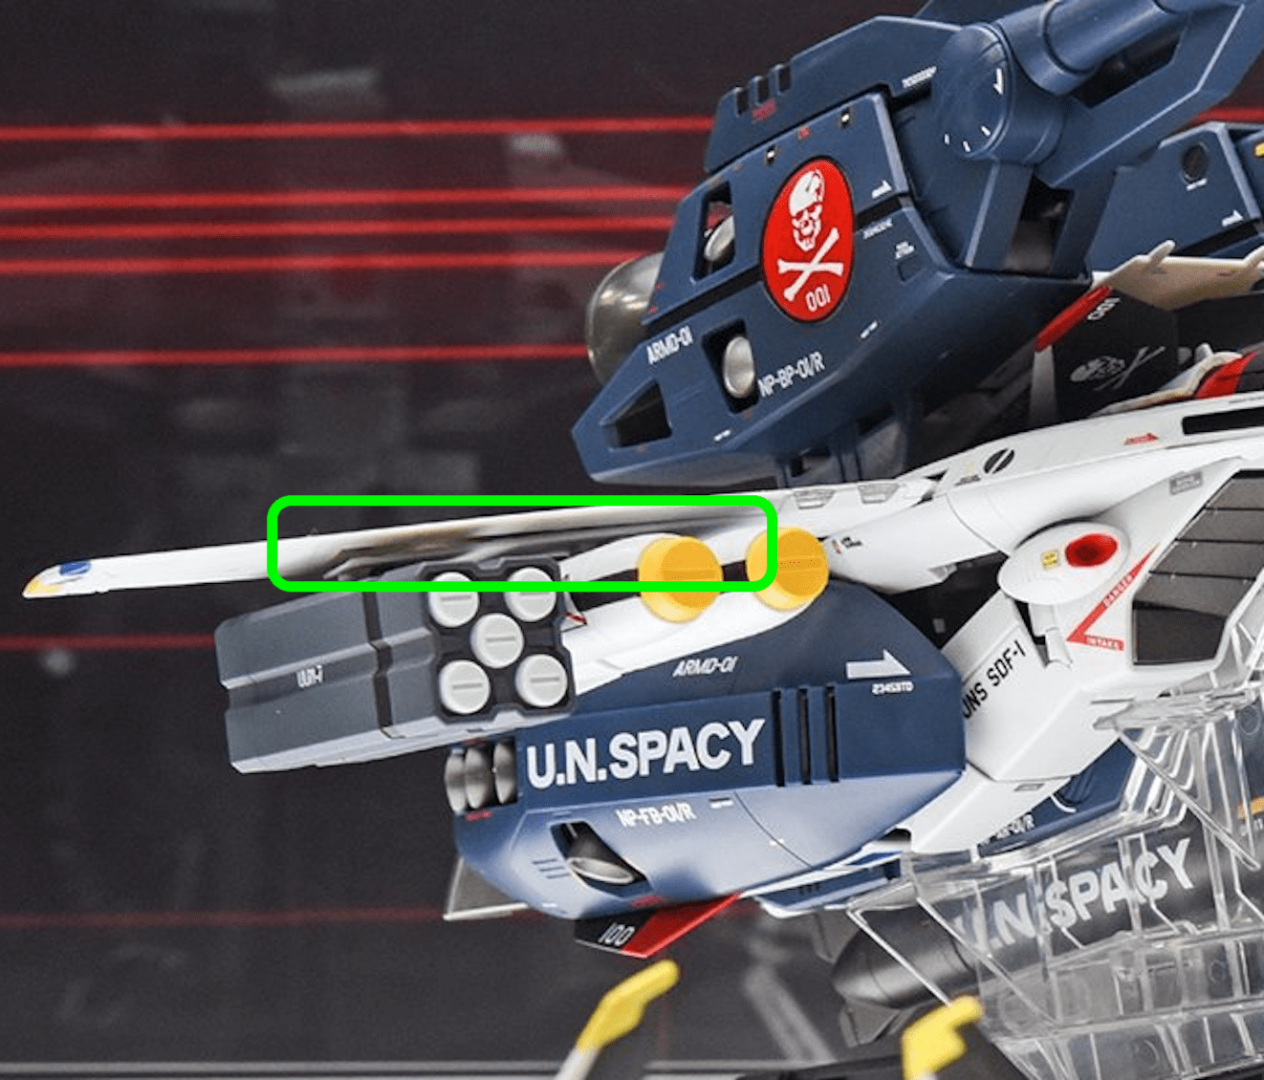 VF-1S-underwingseparation.thumb.png.0ad661d0146ccc6696a994574e1a4c3f.png